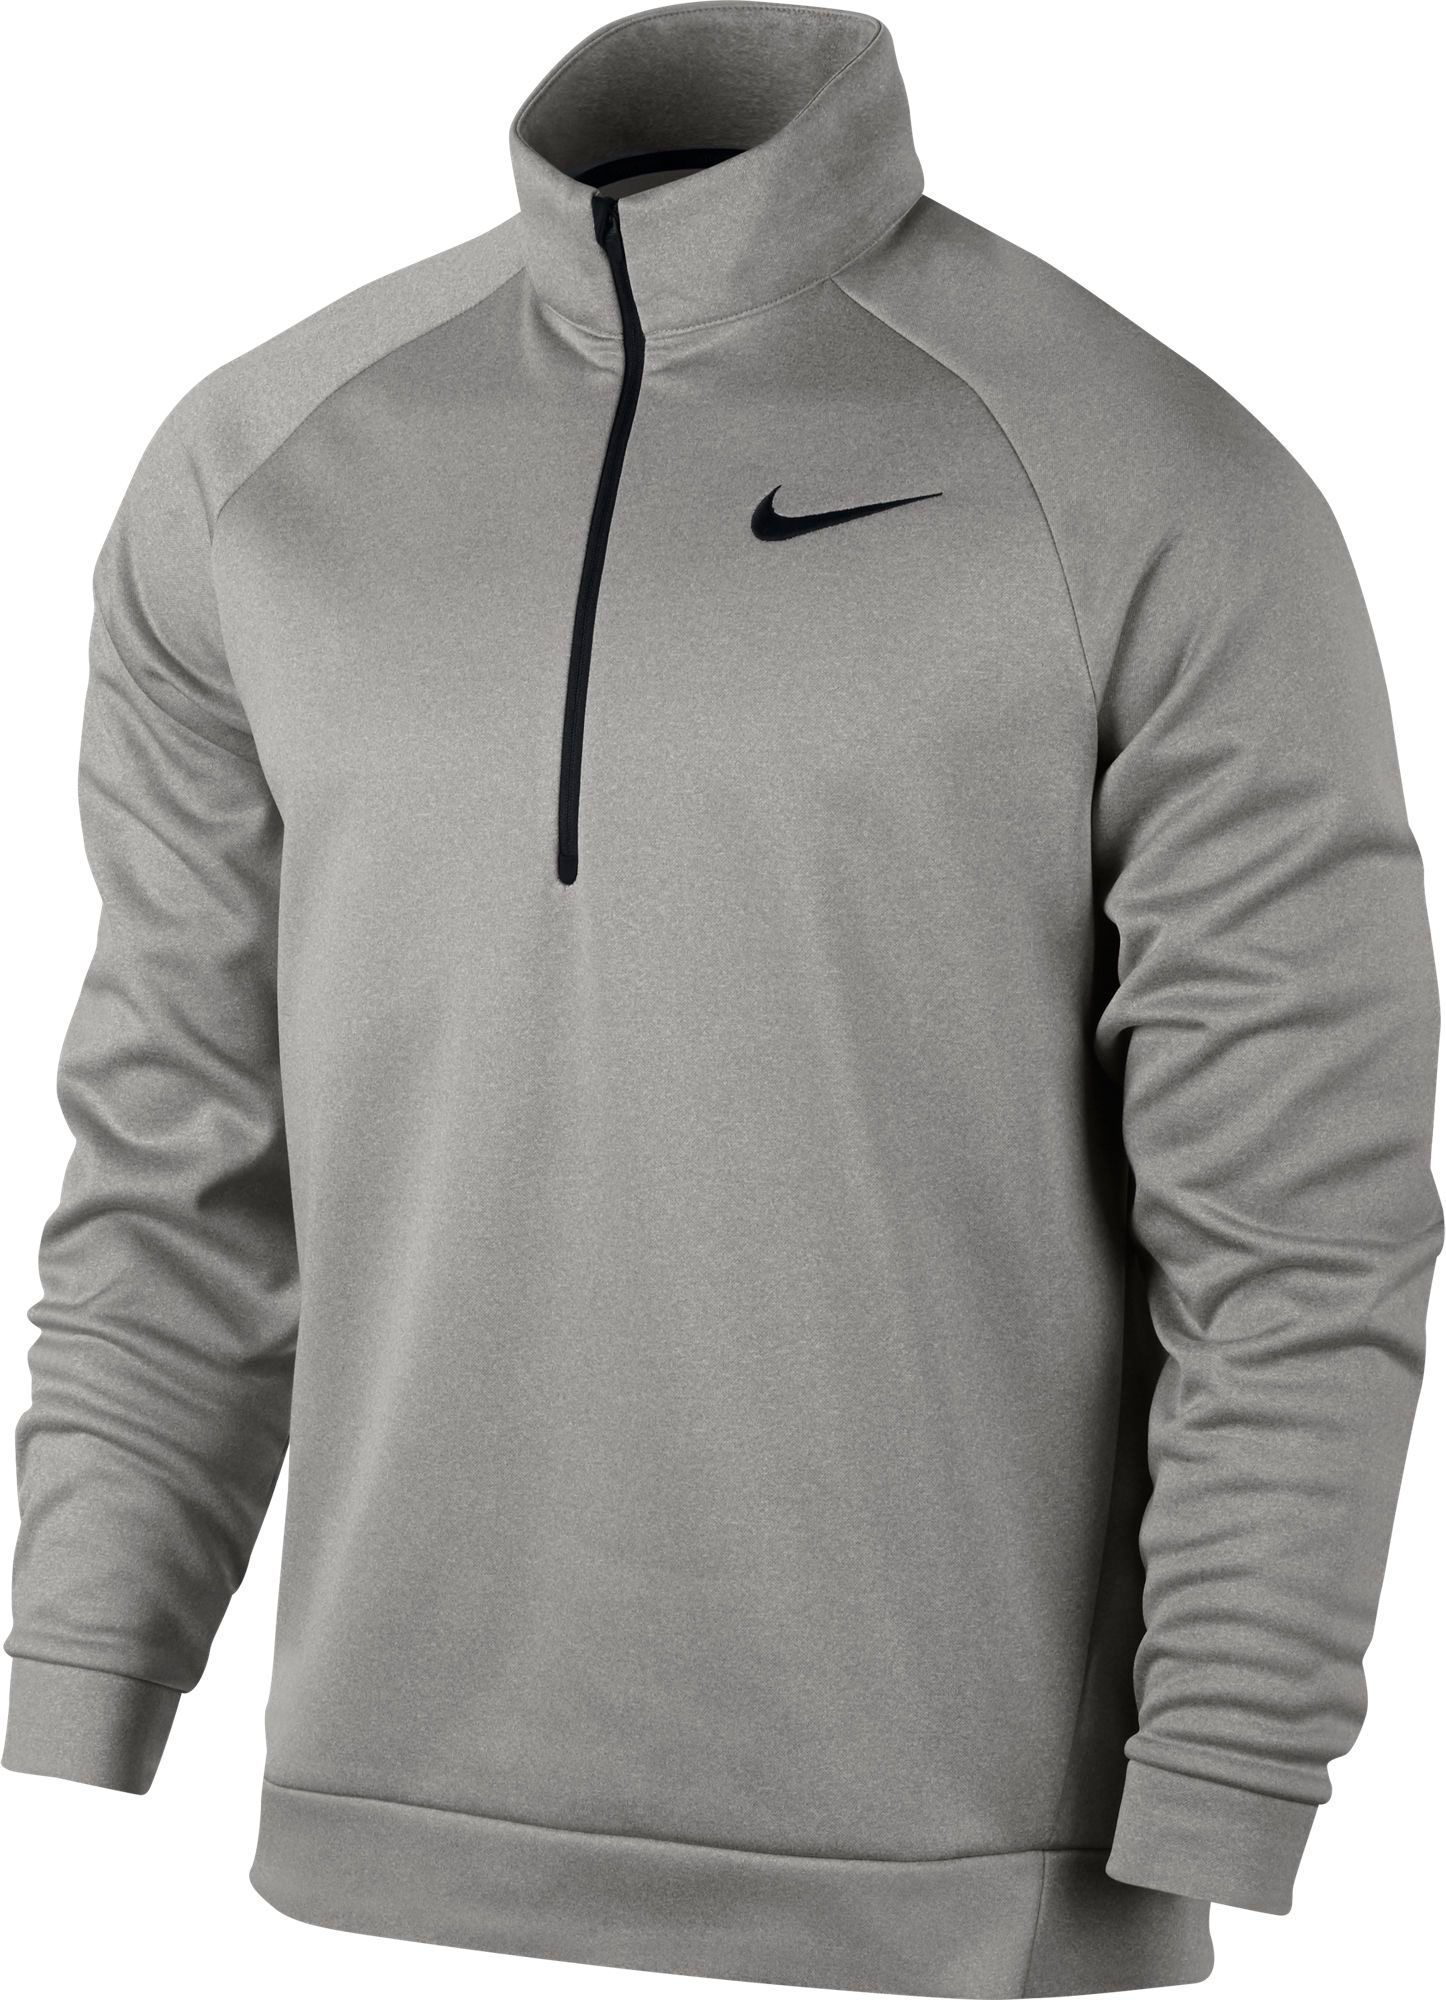 fd501cc1 Nike Men's Therma Long Sleeve Quarter Zip Shirt, Size: Medium, Gray ...